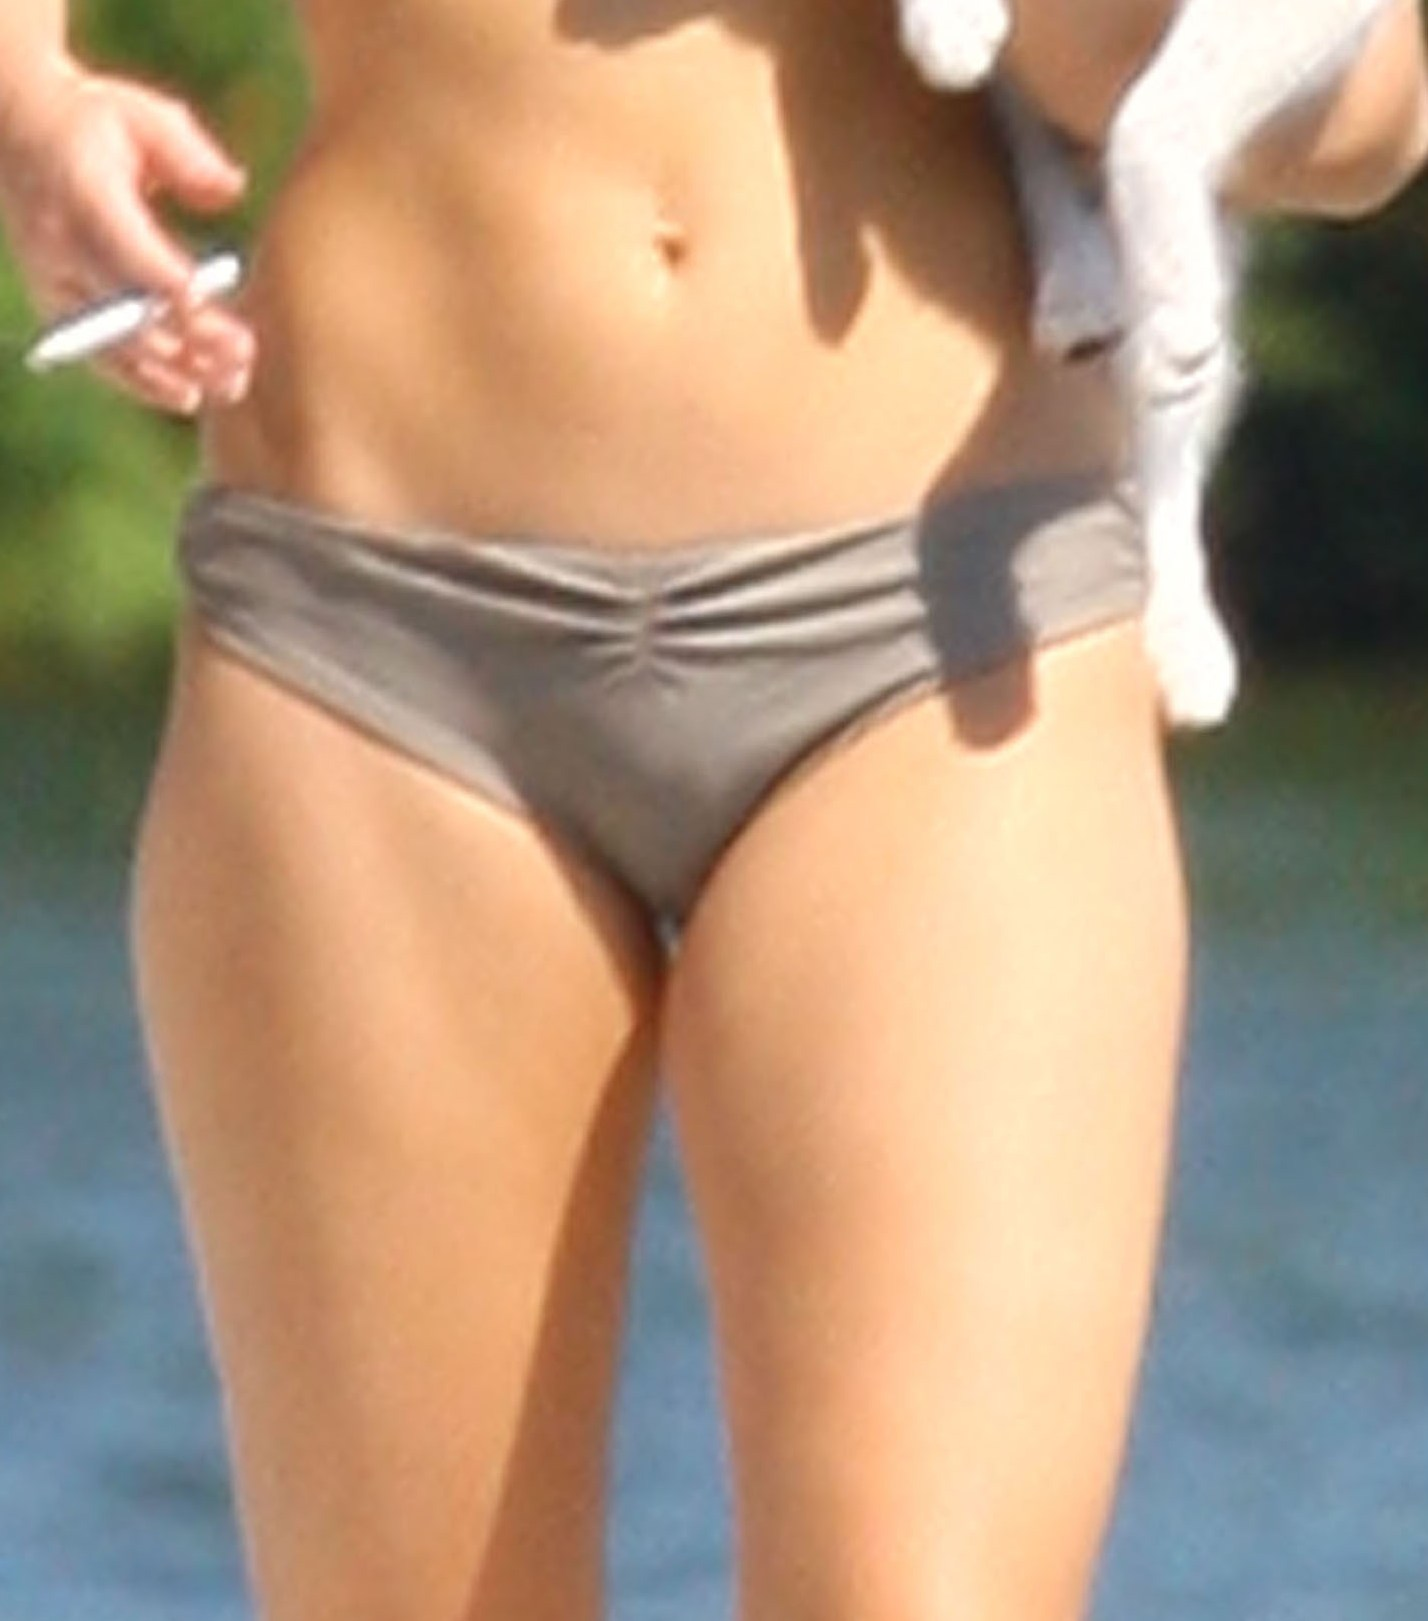 Miley Cyrus Pussy Mound Here Are Some Bikini